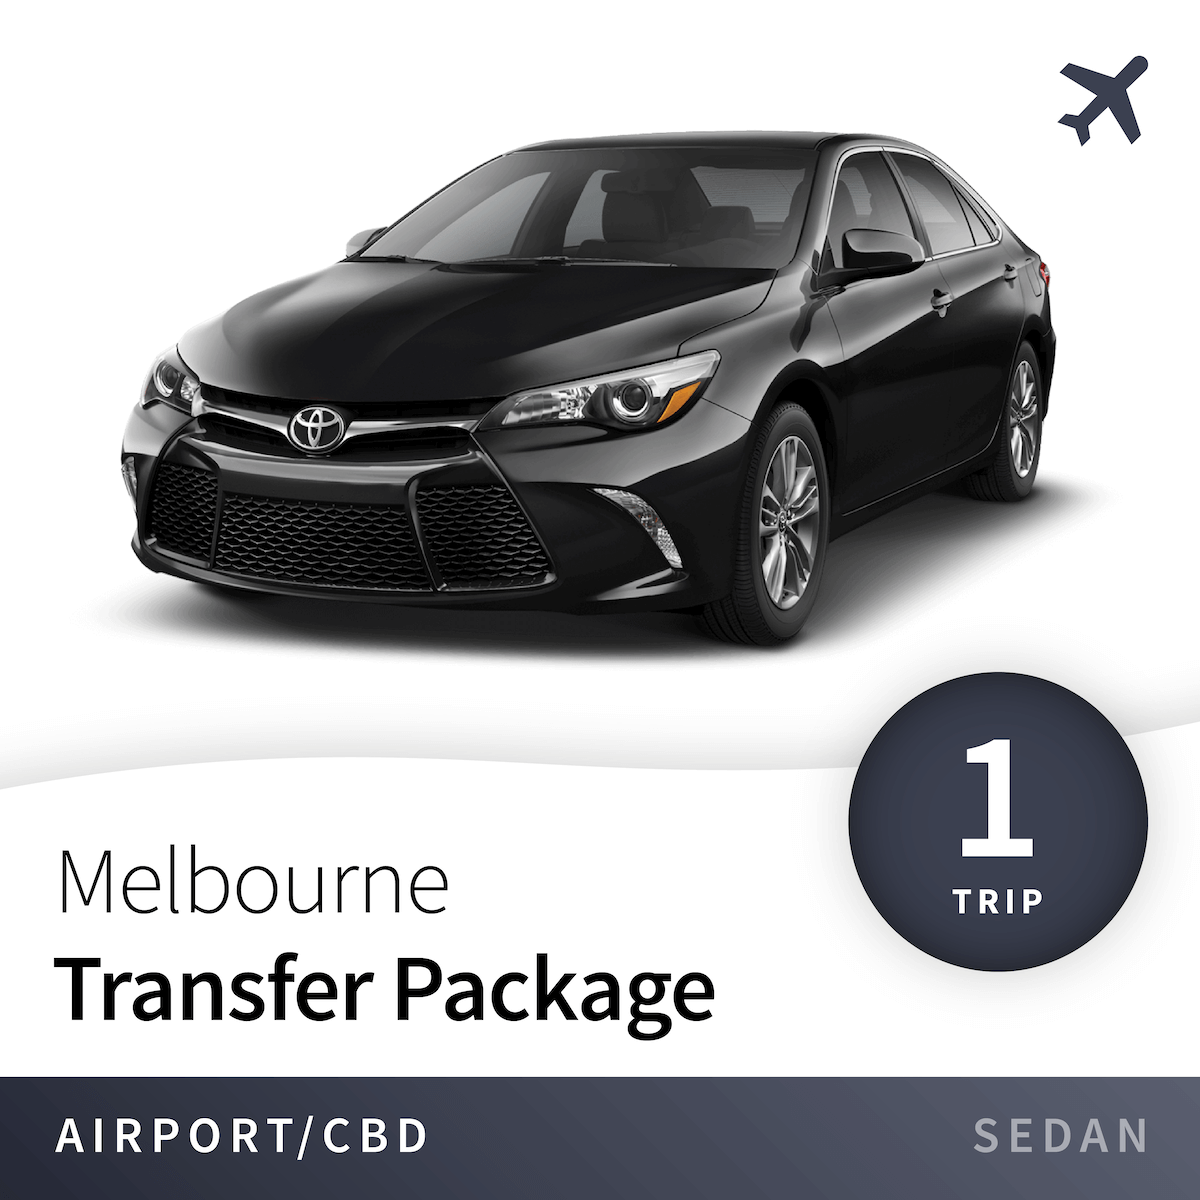 Melbourne Airport Transfer Package - Sedan (1 Trip) 1